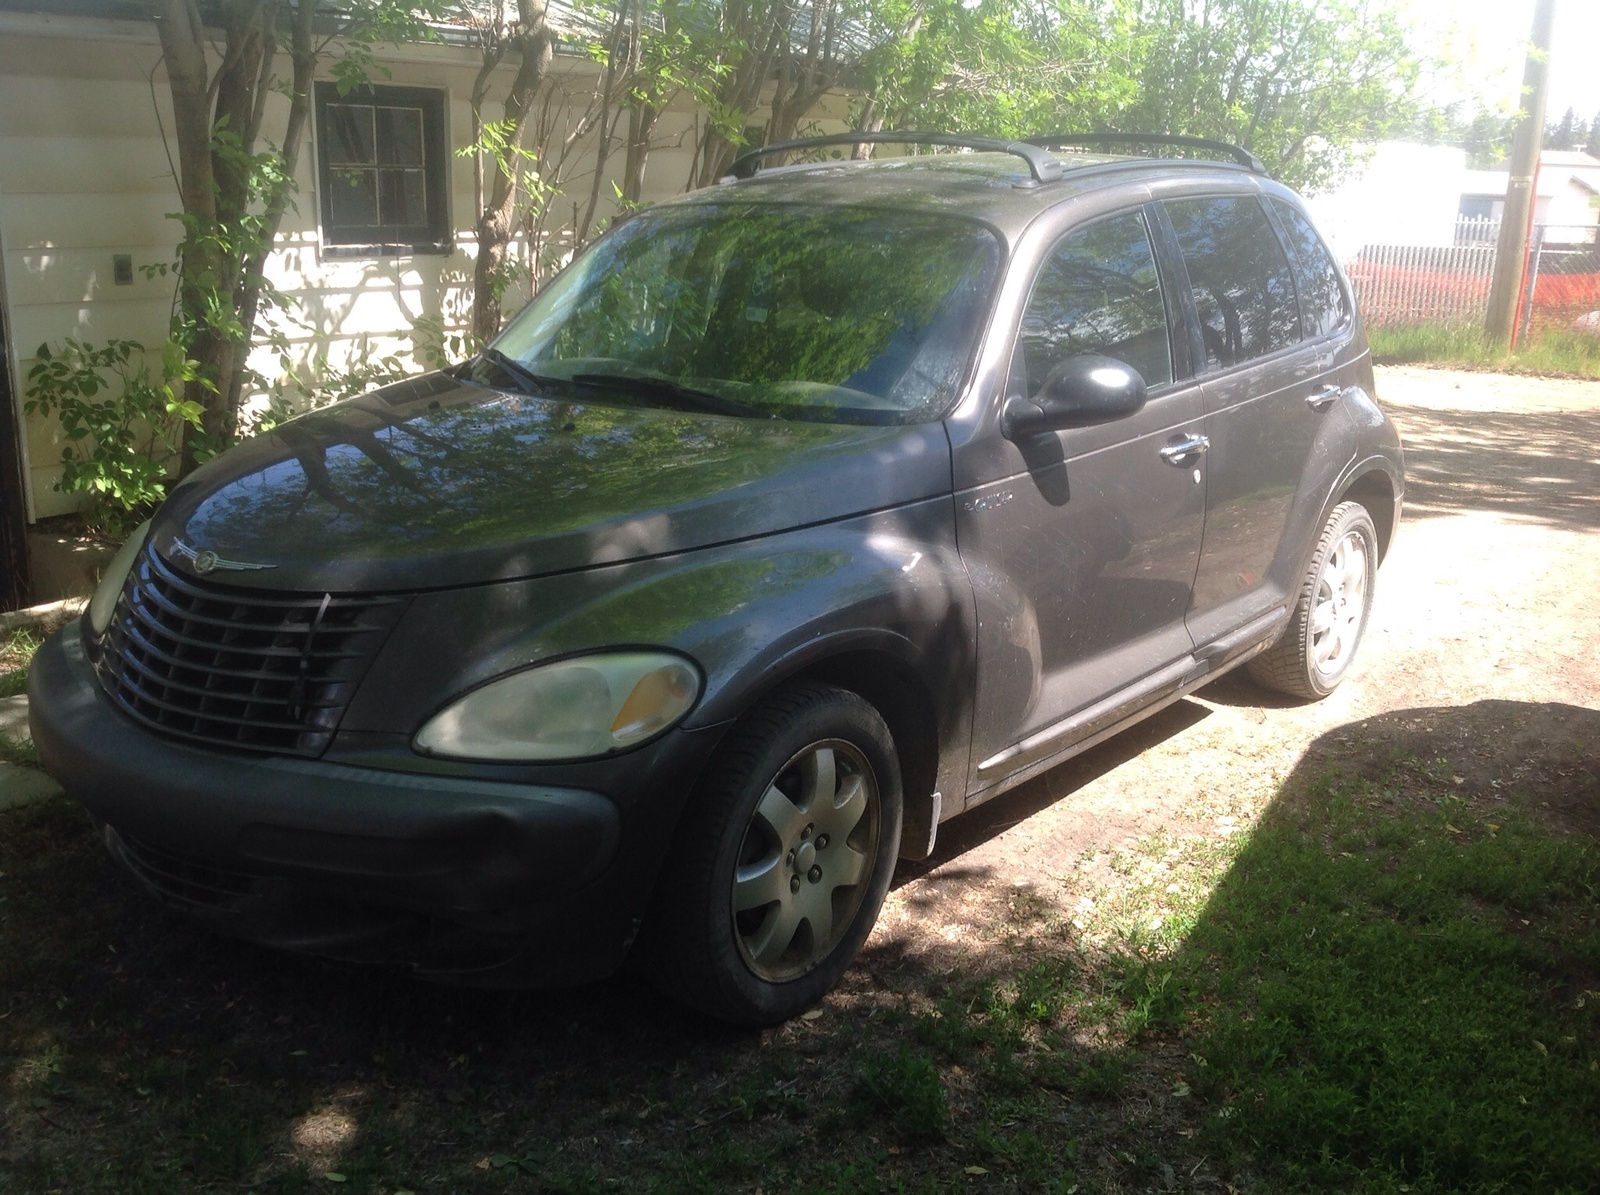 Chrysler Pt Cruiser Questions If The Timing Belt Breaks Does It 2000 Pontiac Grand Prix Engine Diagram Water Pump On A 3 8 Motor Not Known Has Ever Been Changed Before Bought Car For 150000 At Garage Sale 3rd Owner I Love My Gloria